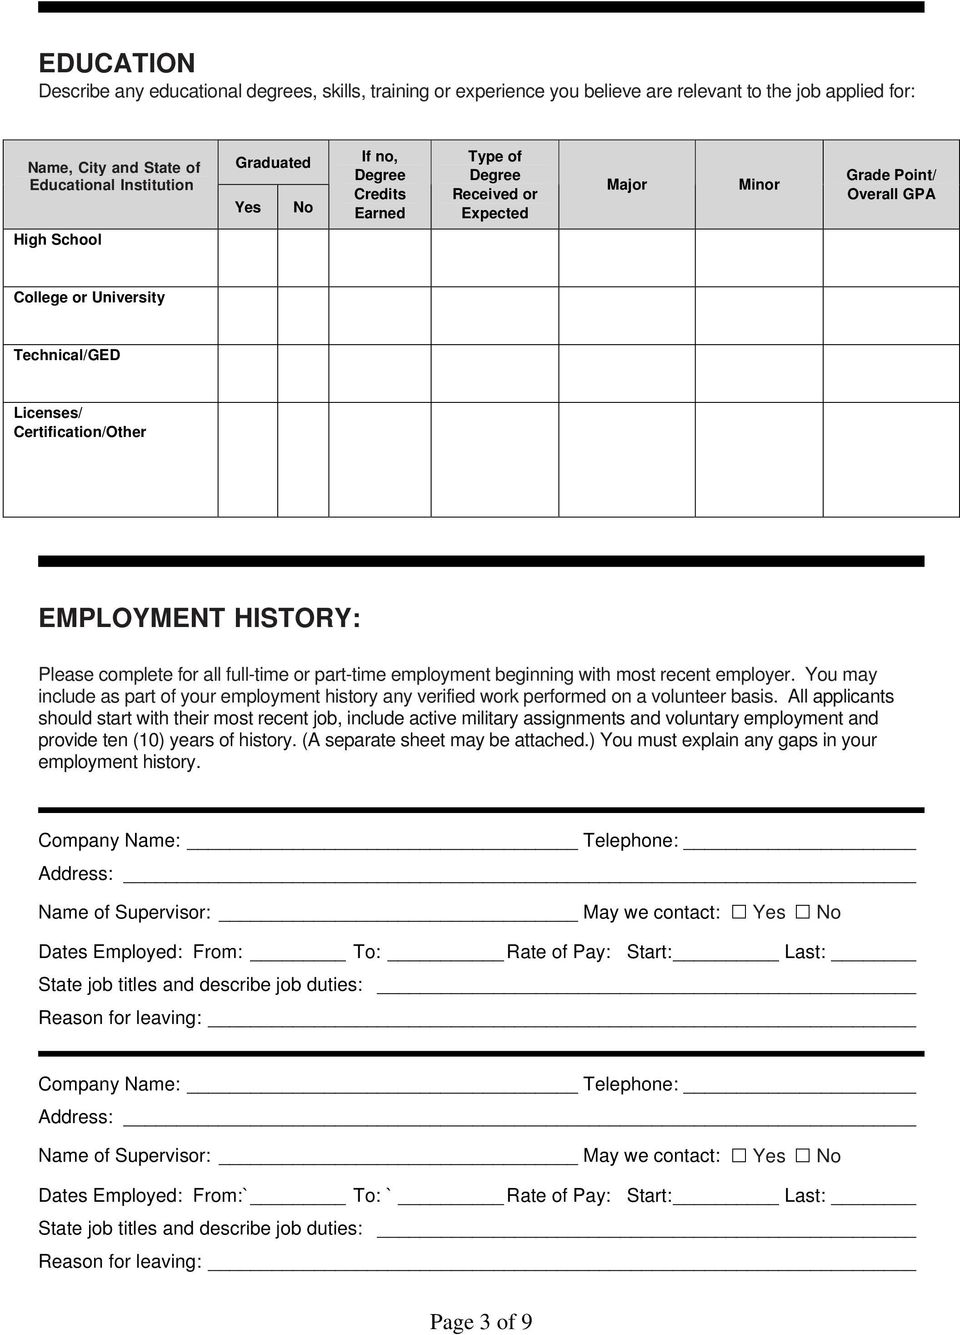 complete for all full-time or part-time employment beginning with most recent employer. You may include as part of your employment history any verified work performed on a volunteer basis.